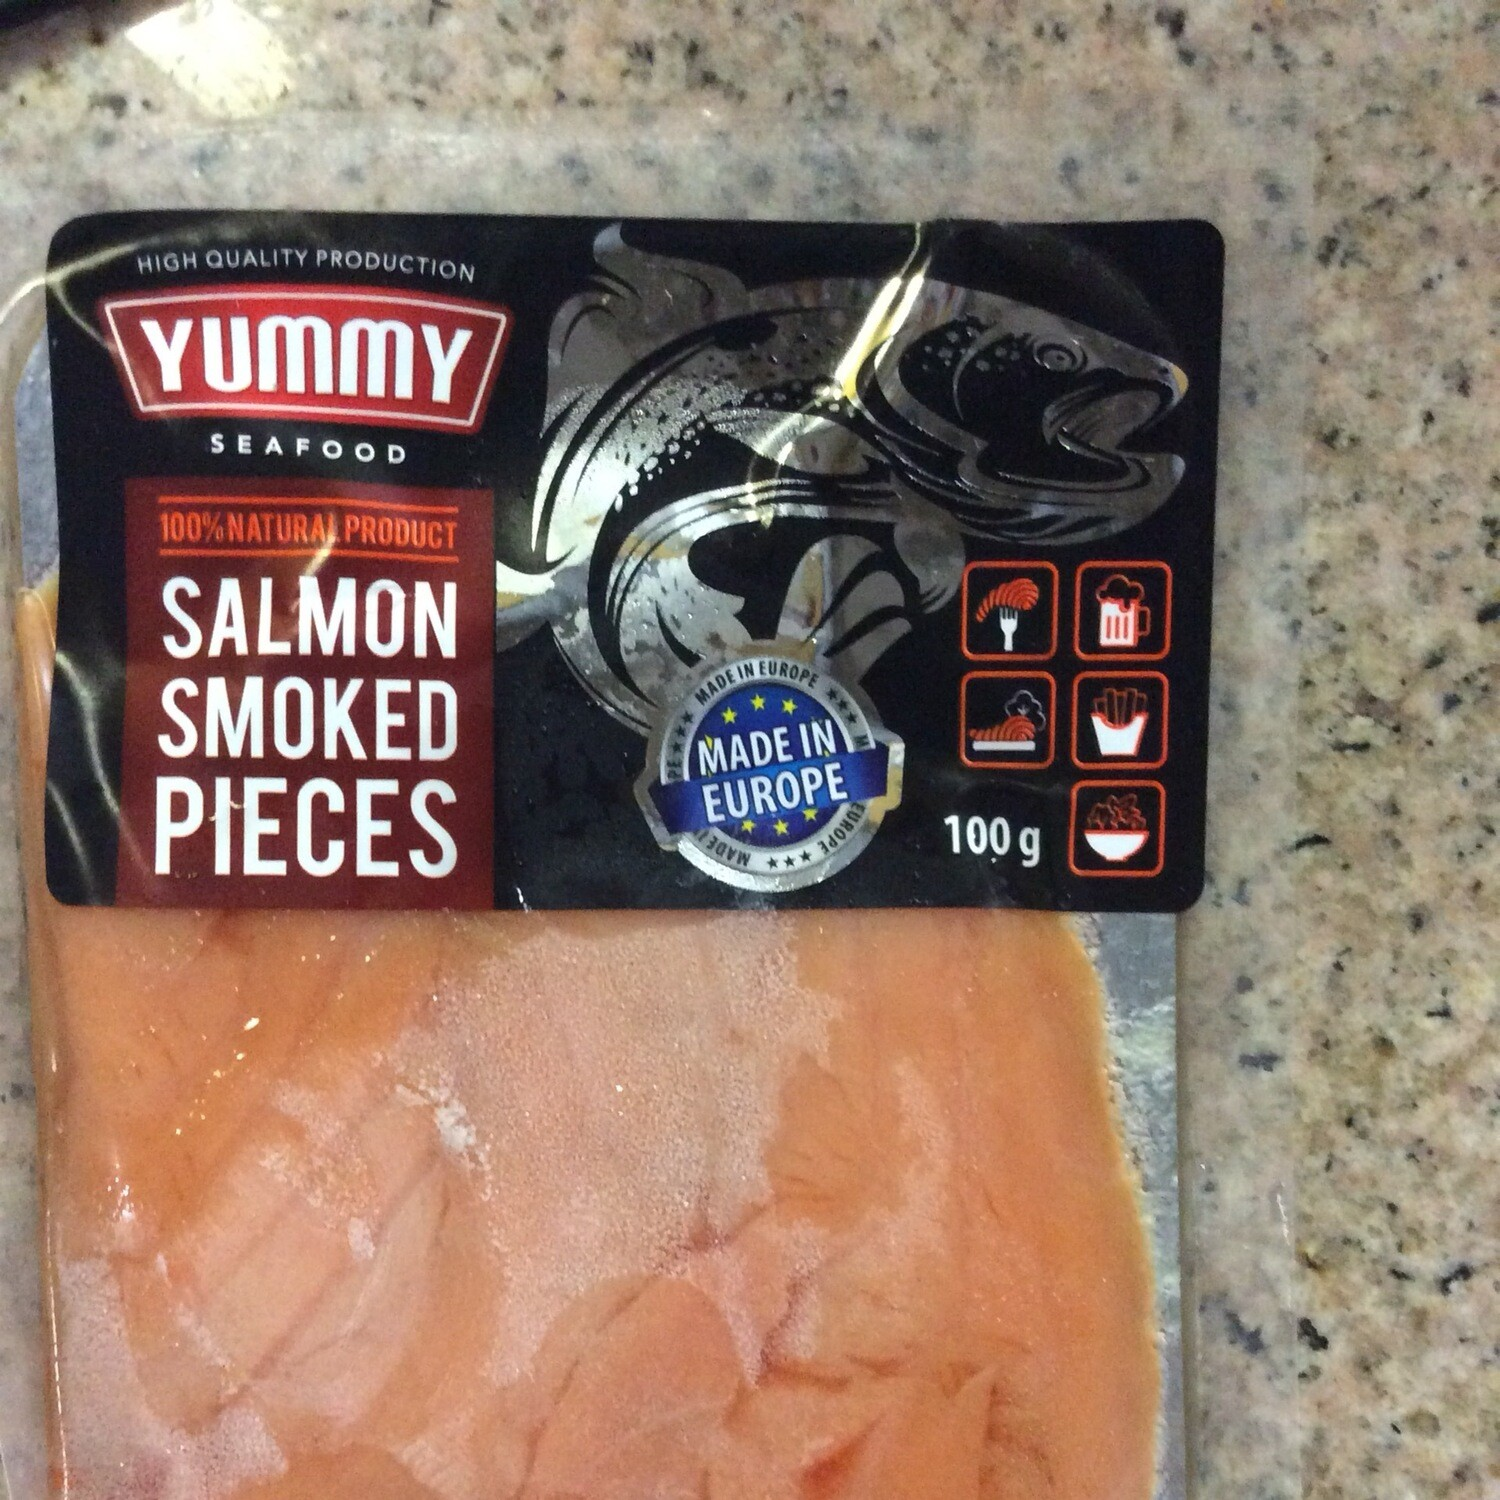 Salmon Smoked Pieces Yummy